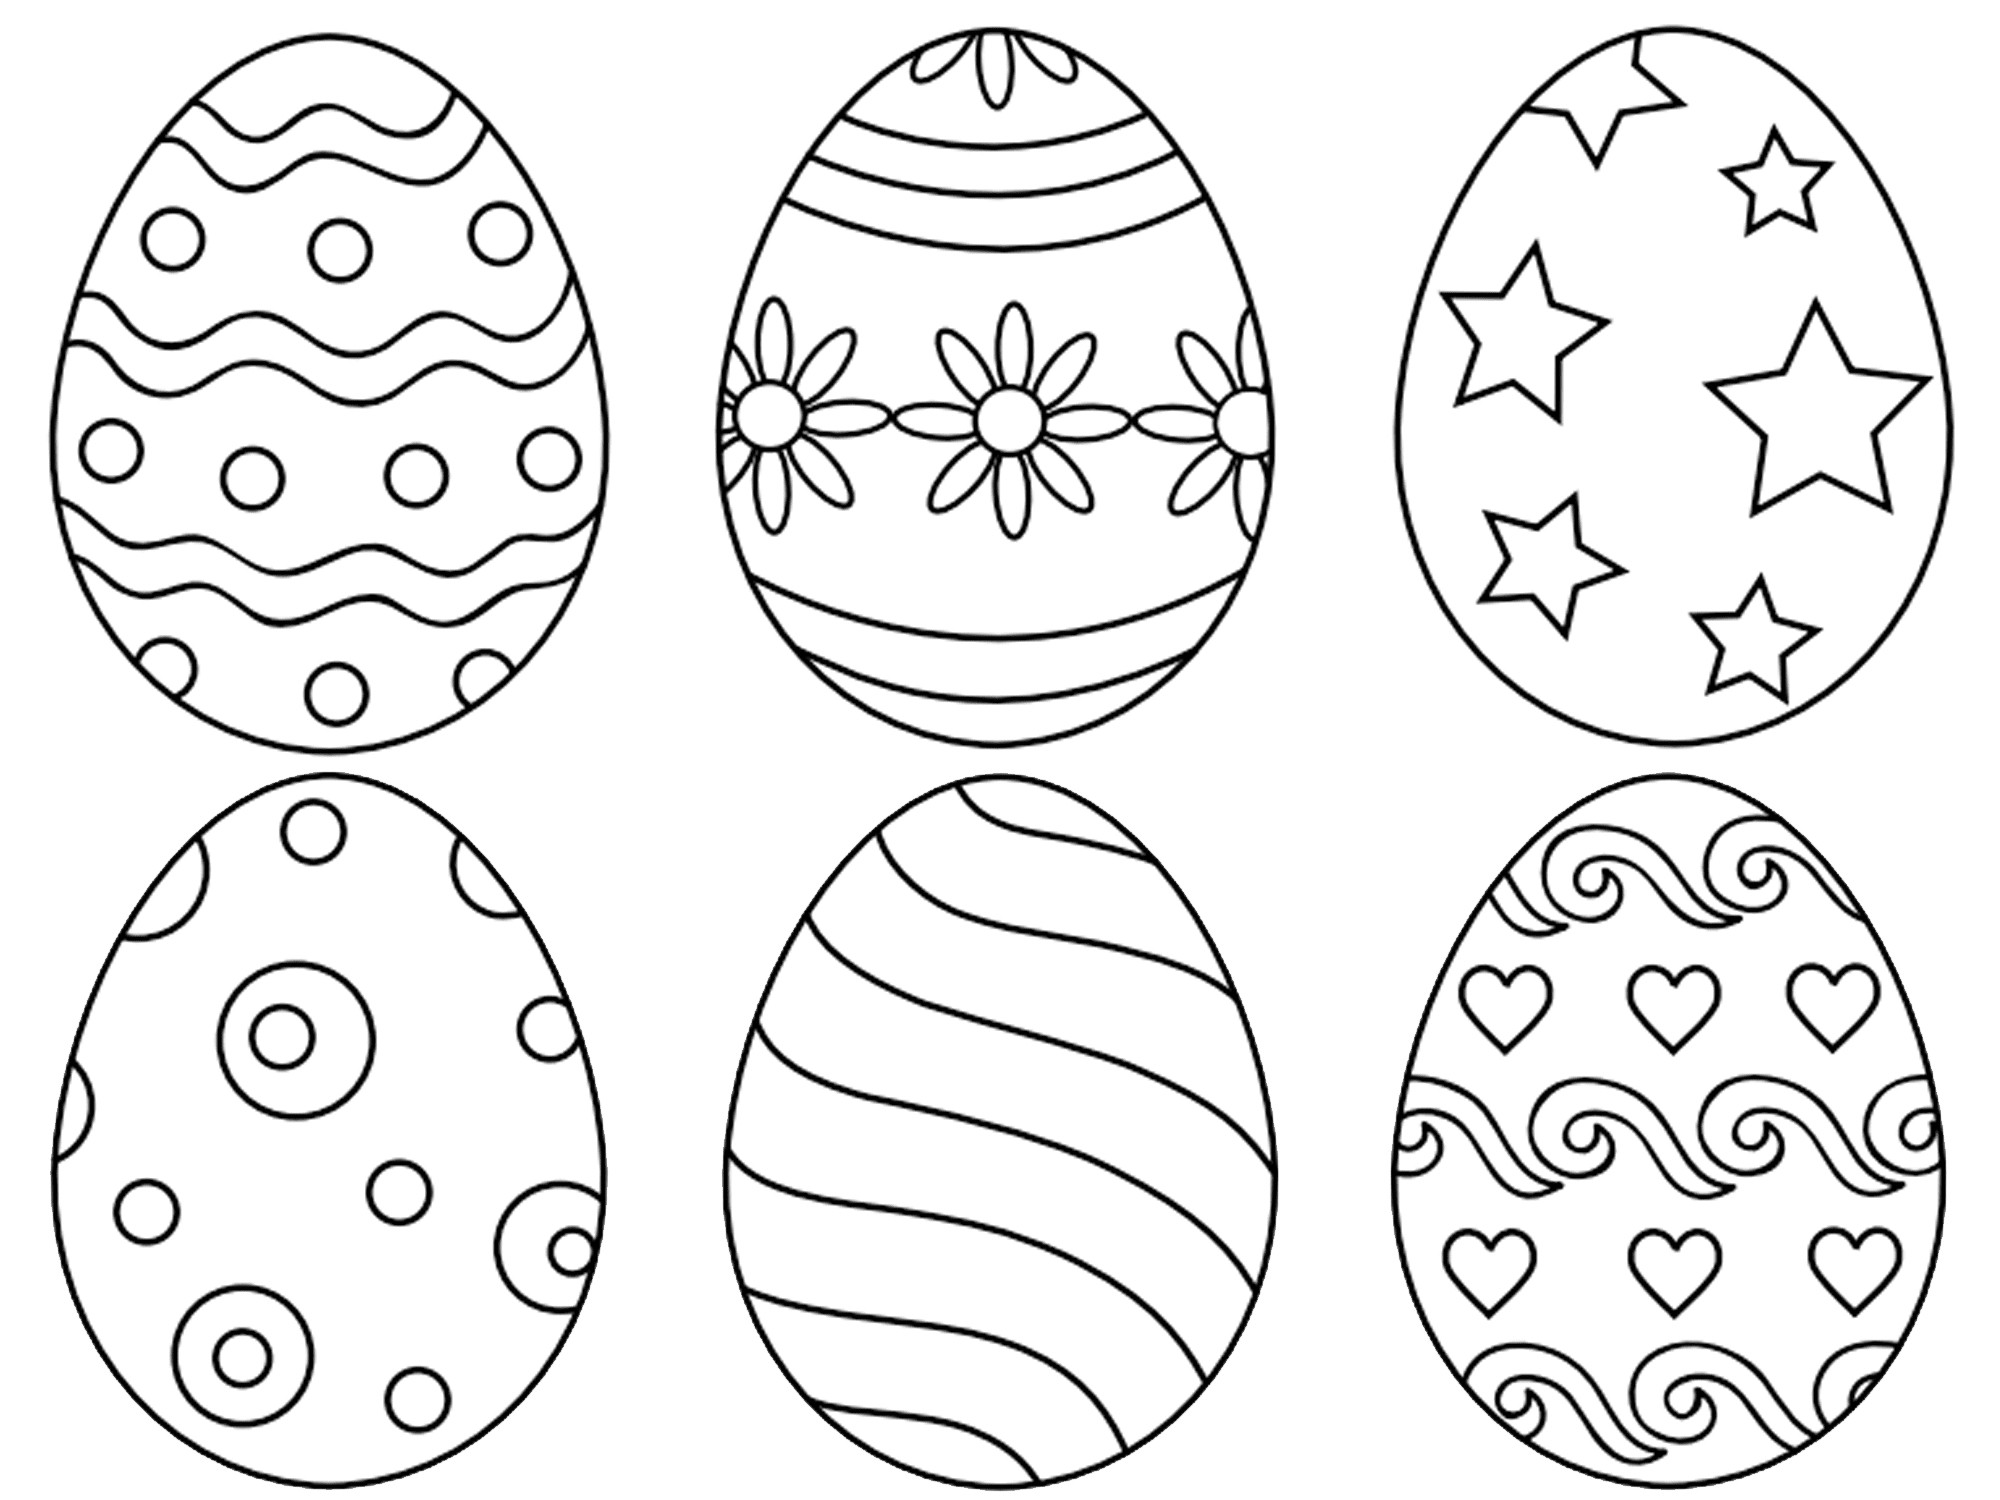 Egg Carton Coloring Page